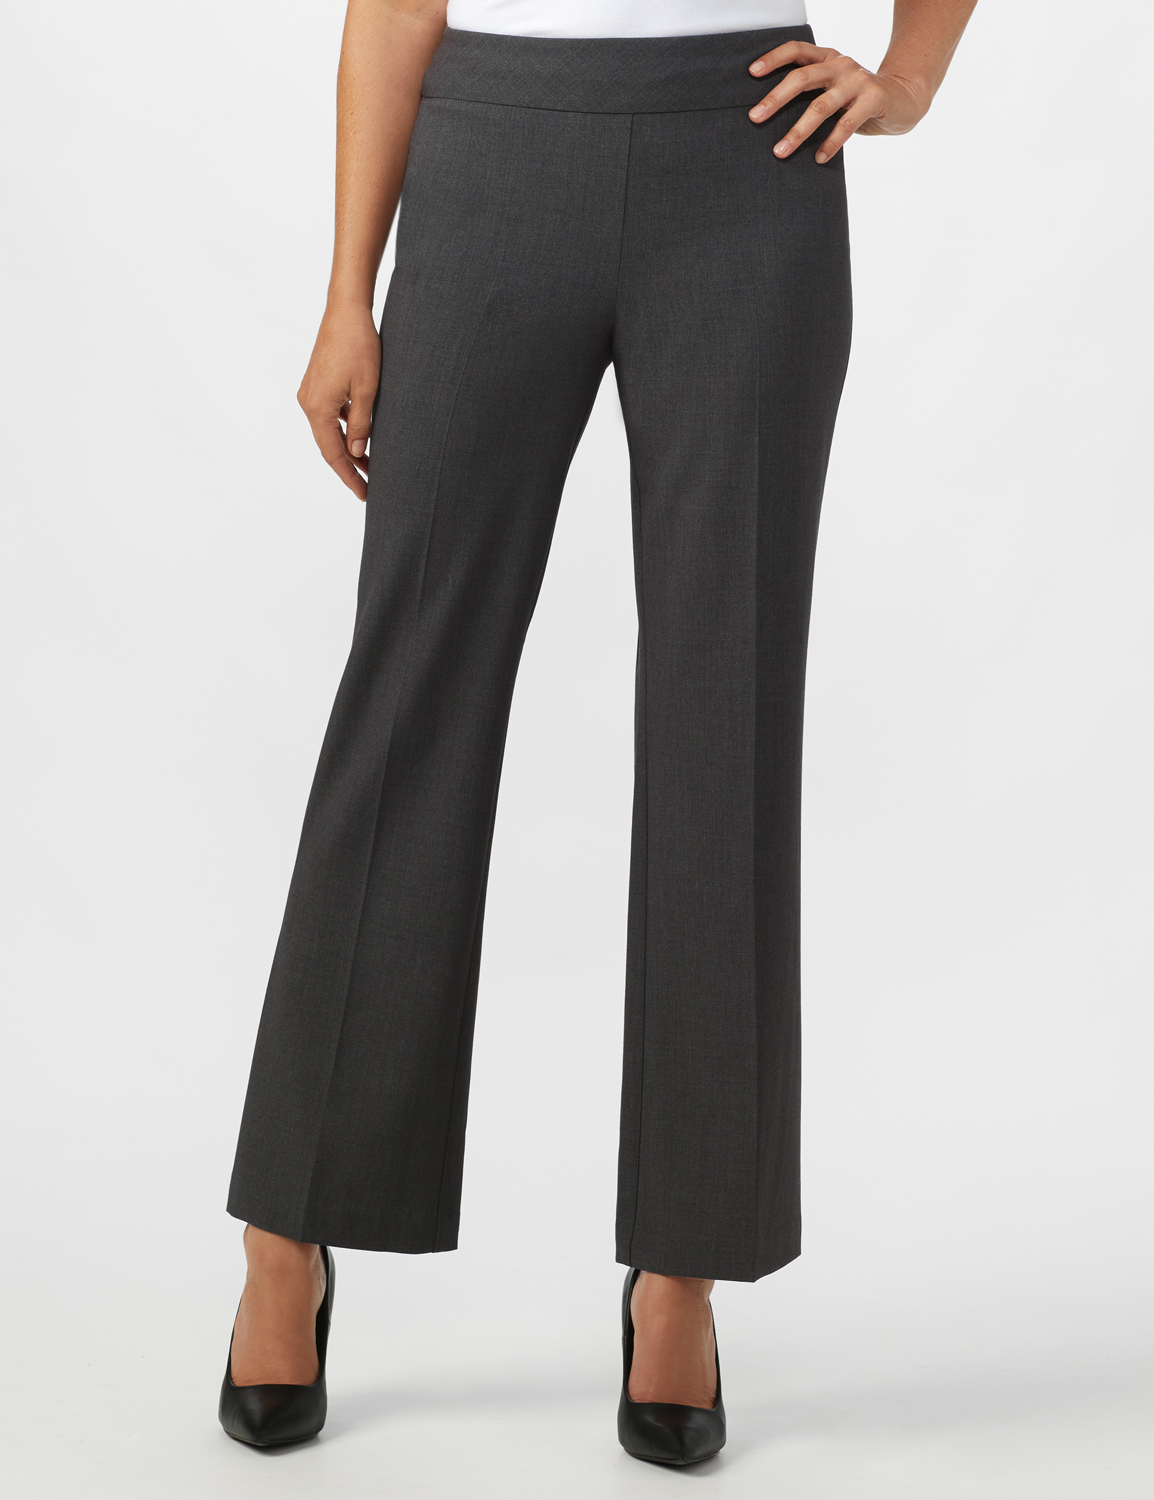 Roz & Ali Secret Agent Tummy Control Pants - Average Length -grey - Front